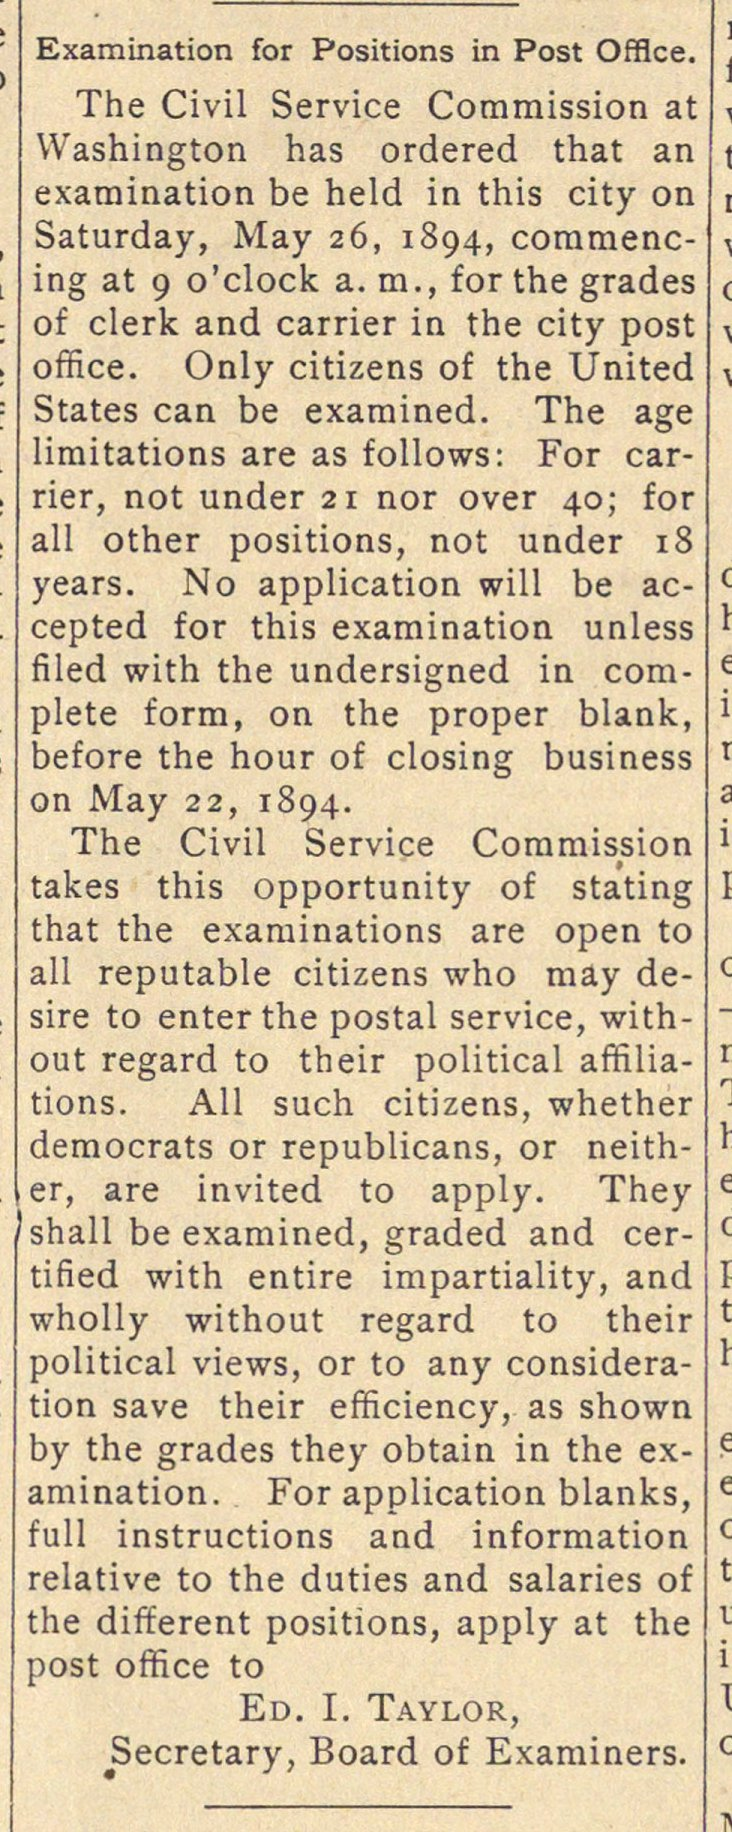 Examination For Positions In Post Office image